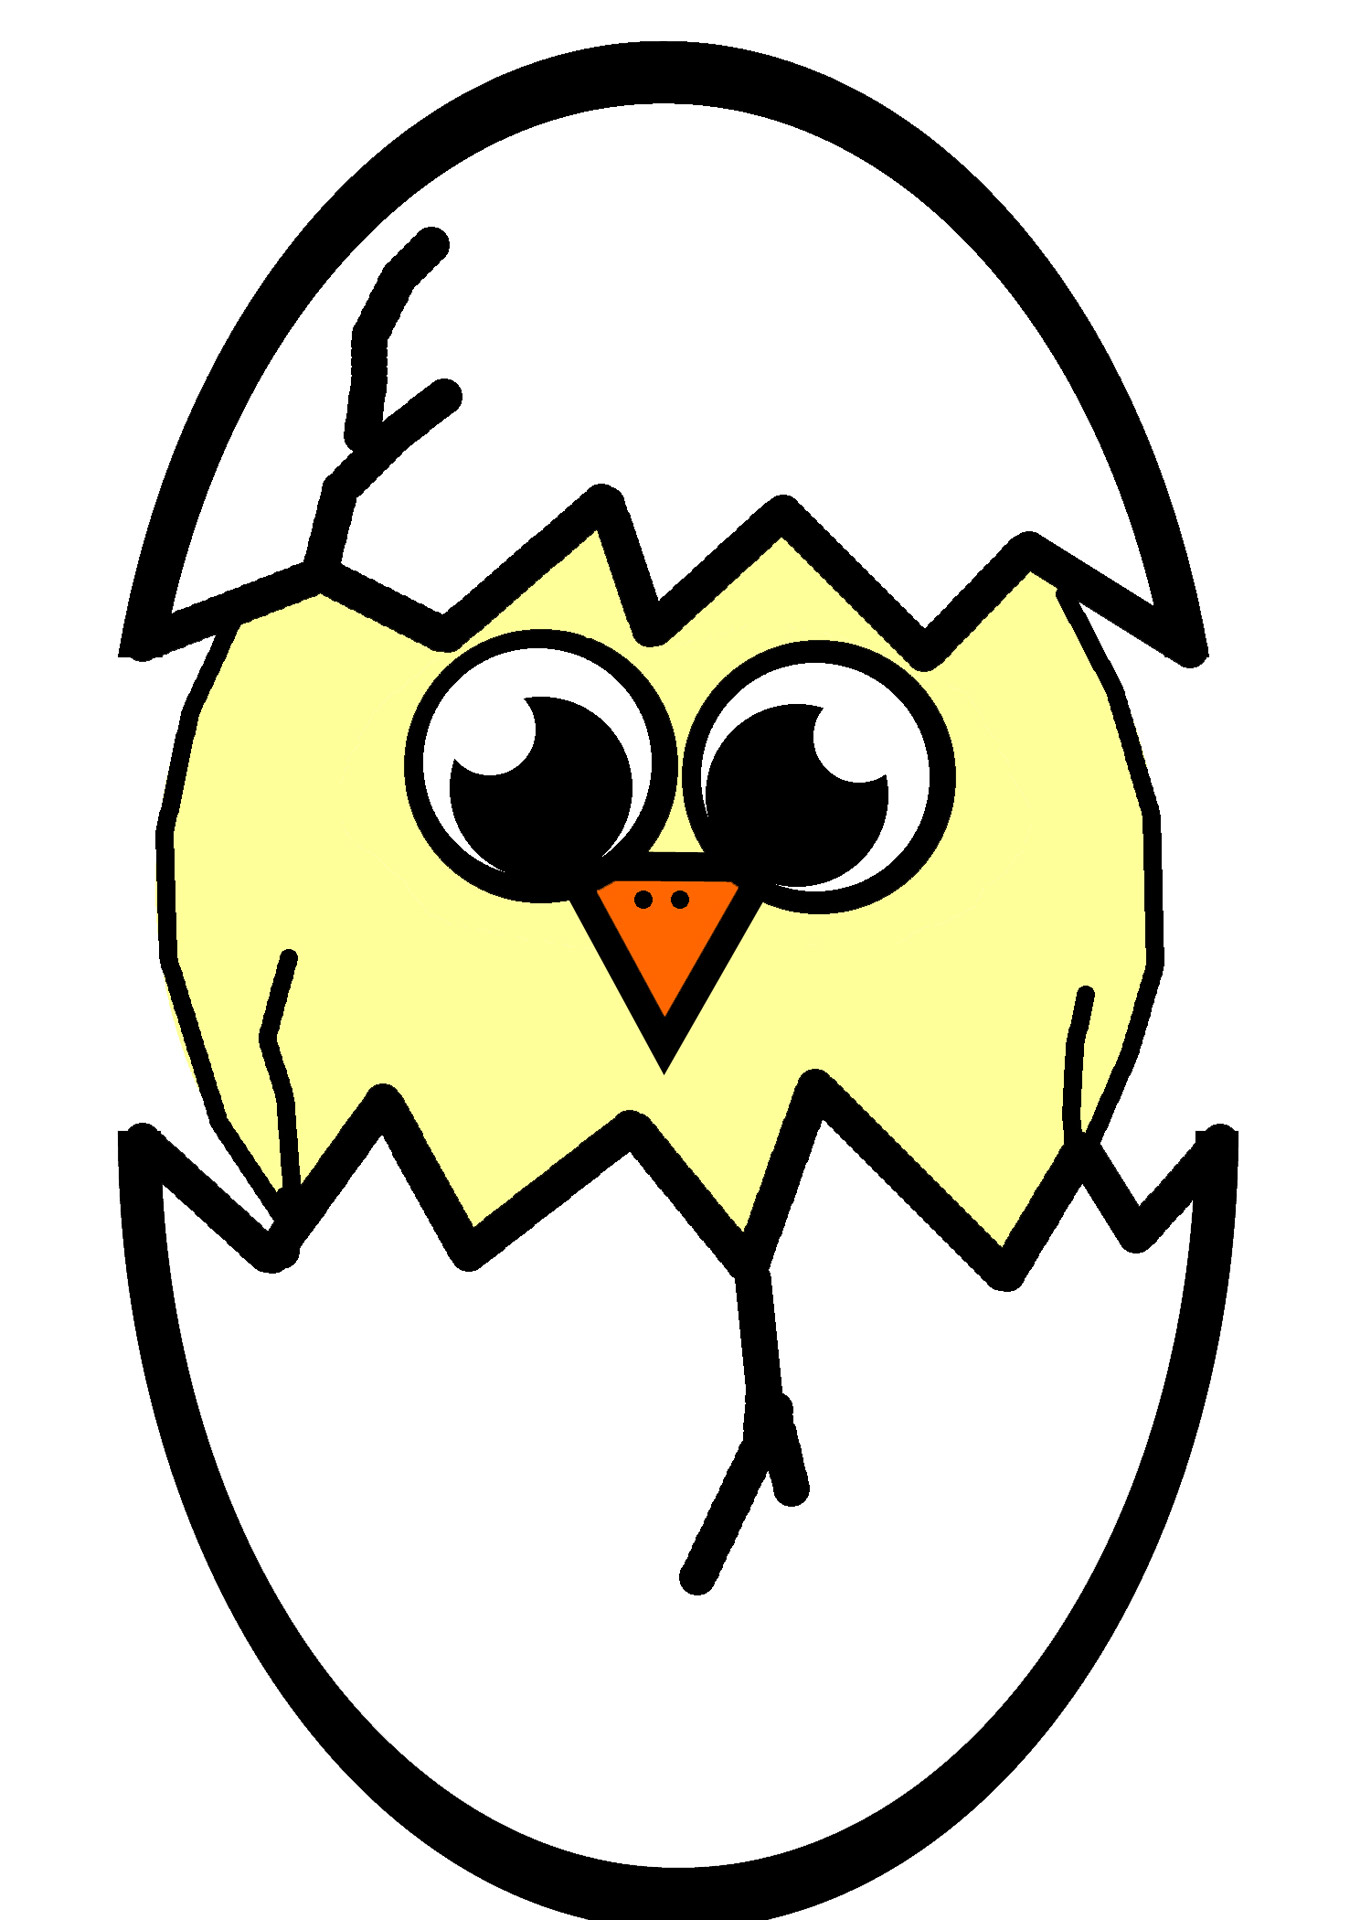 Hatching Chick Illustration Free Stock Photo.